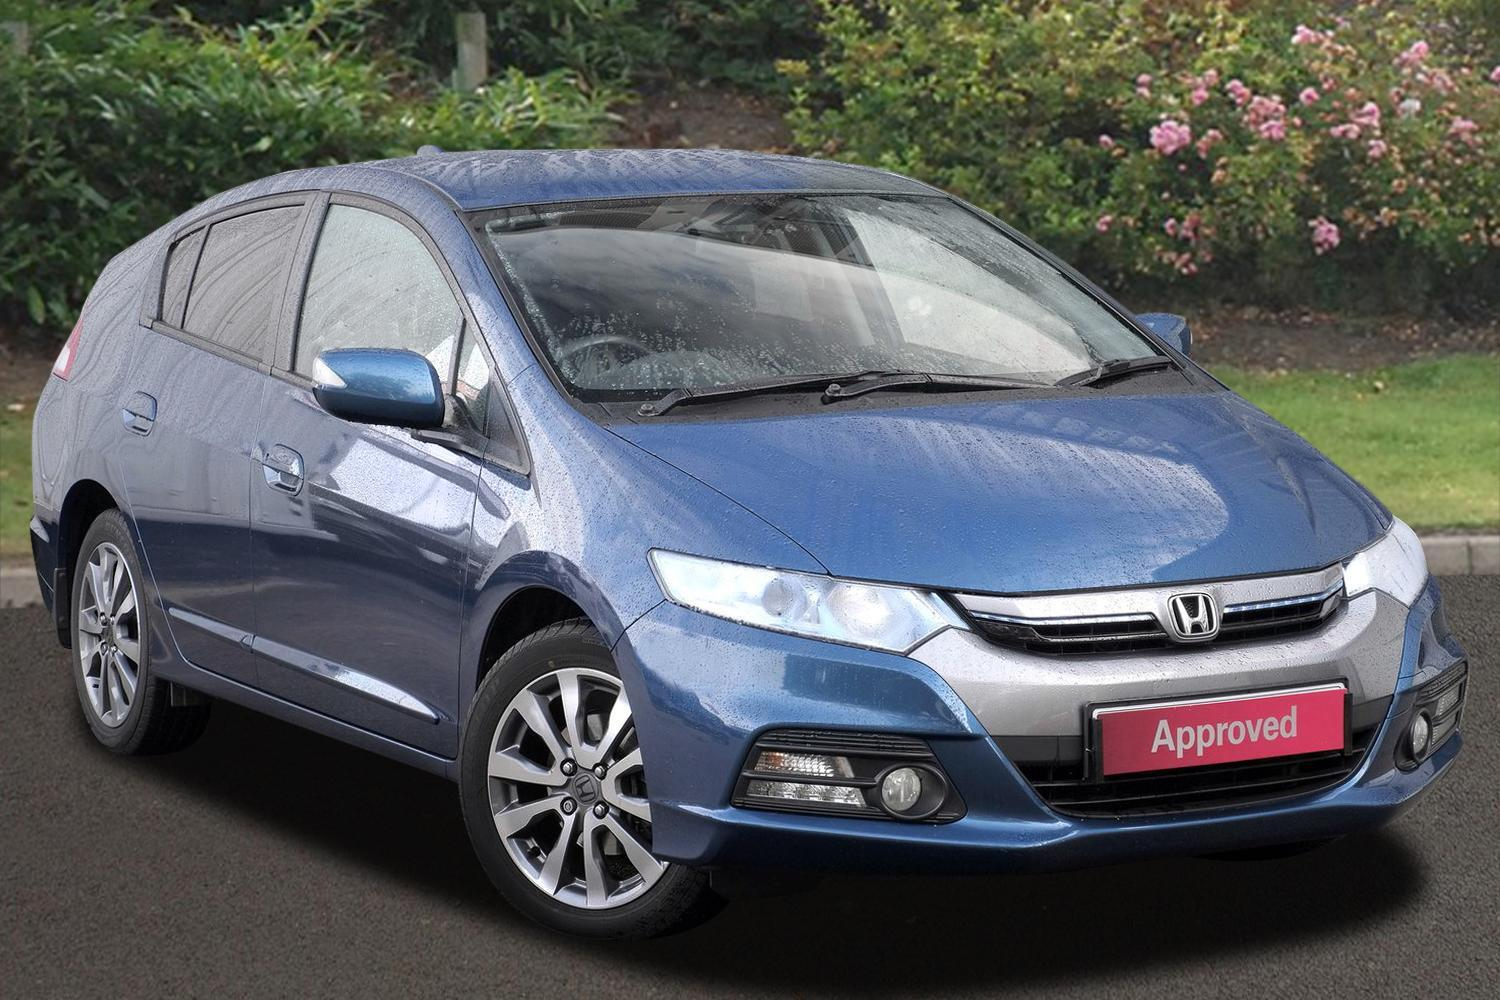 used honda insight 1 3 ima hs t hybrid 5dr cvt hybrid hatchback for sale vertu honda. Black Bedroom Furniture Sets. Home Design Ideas